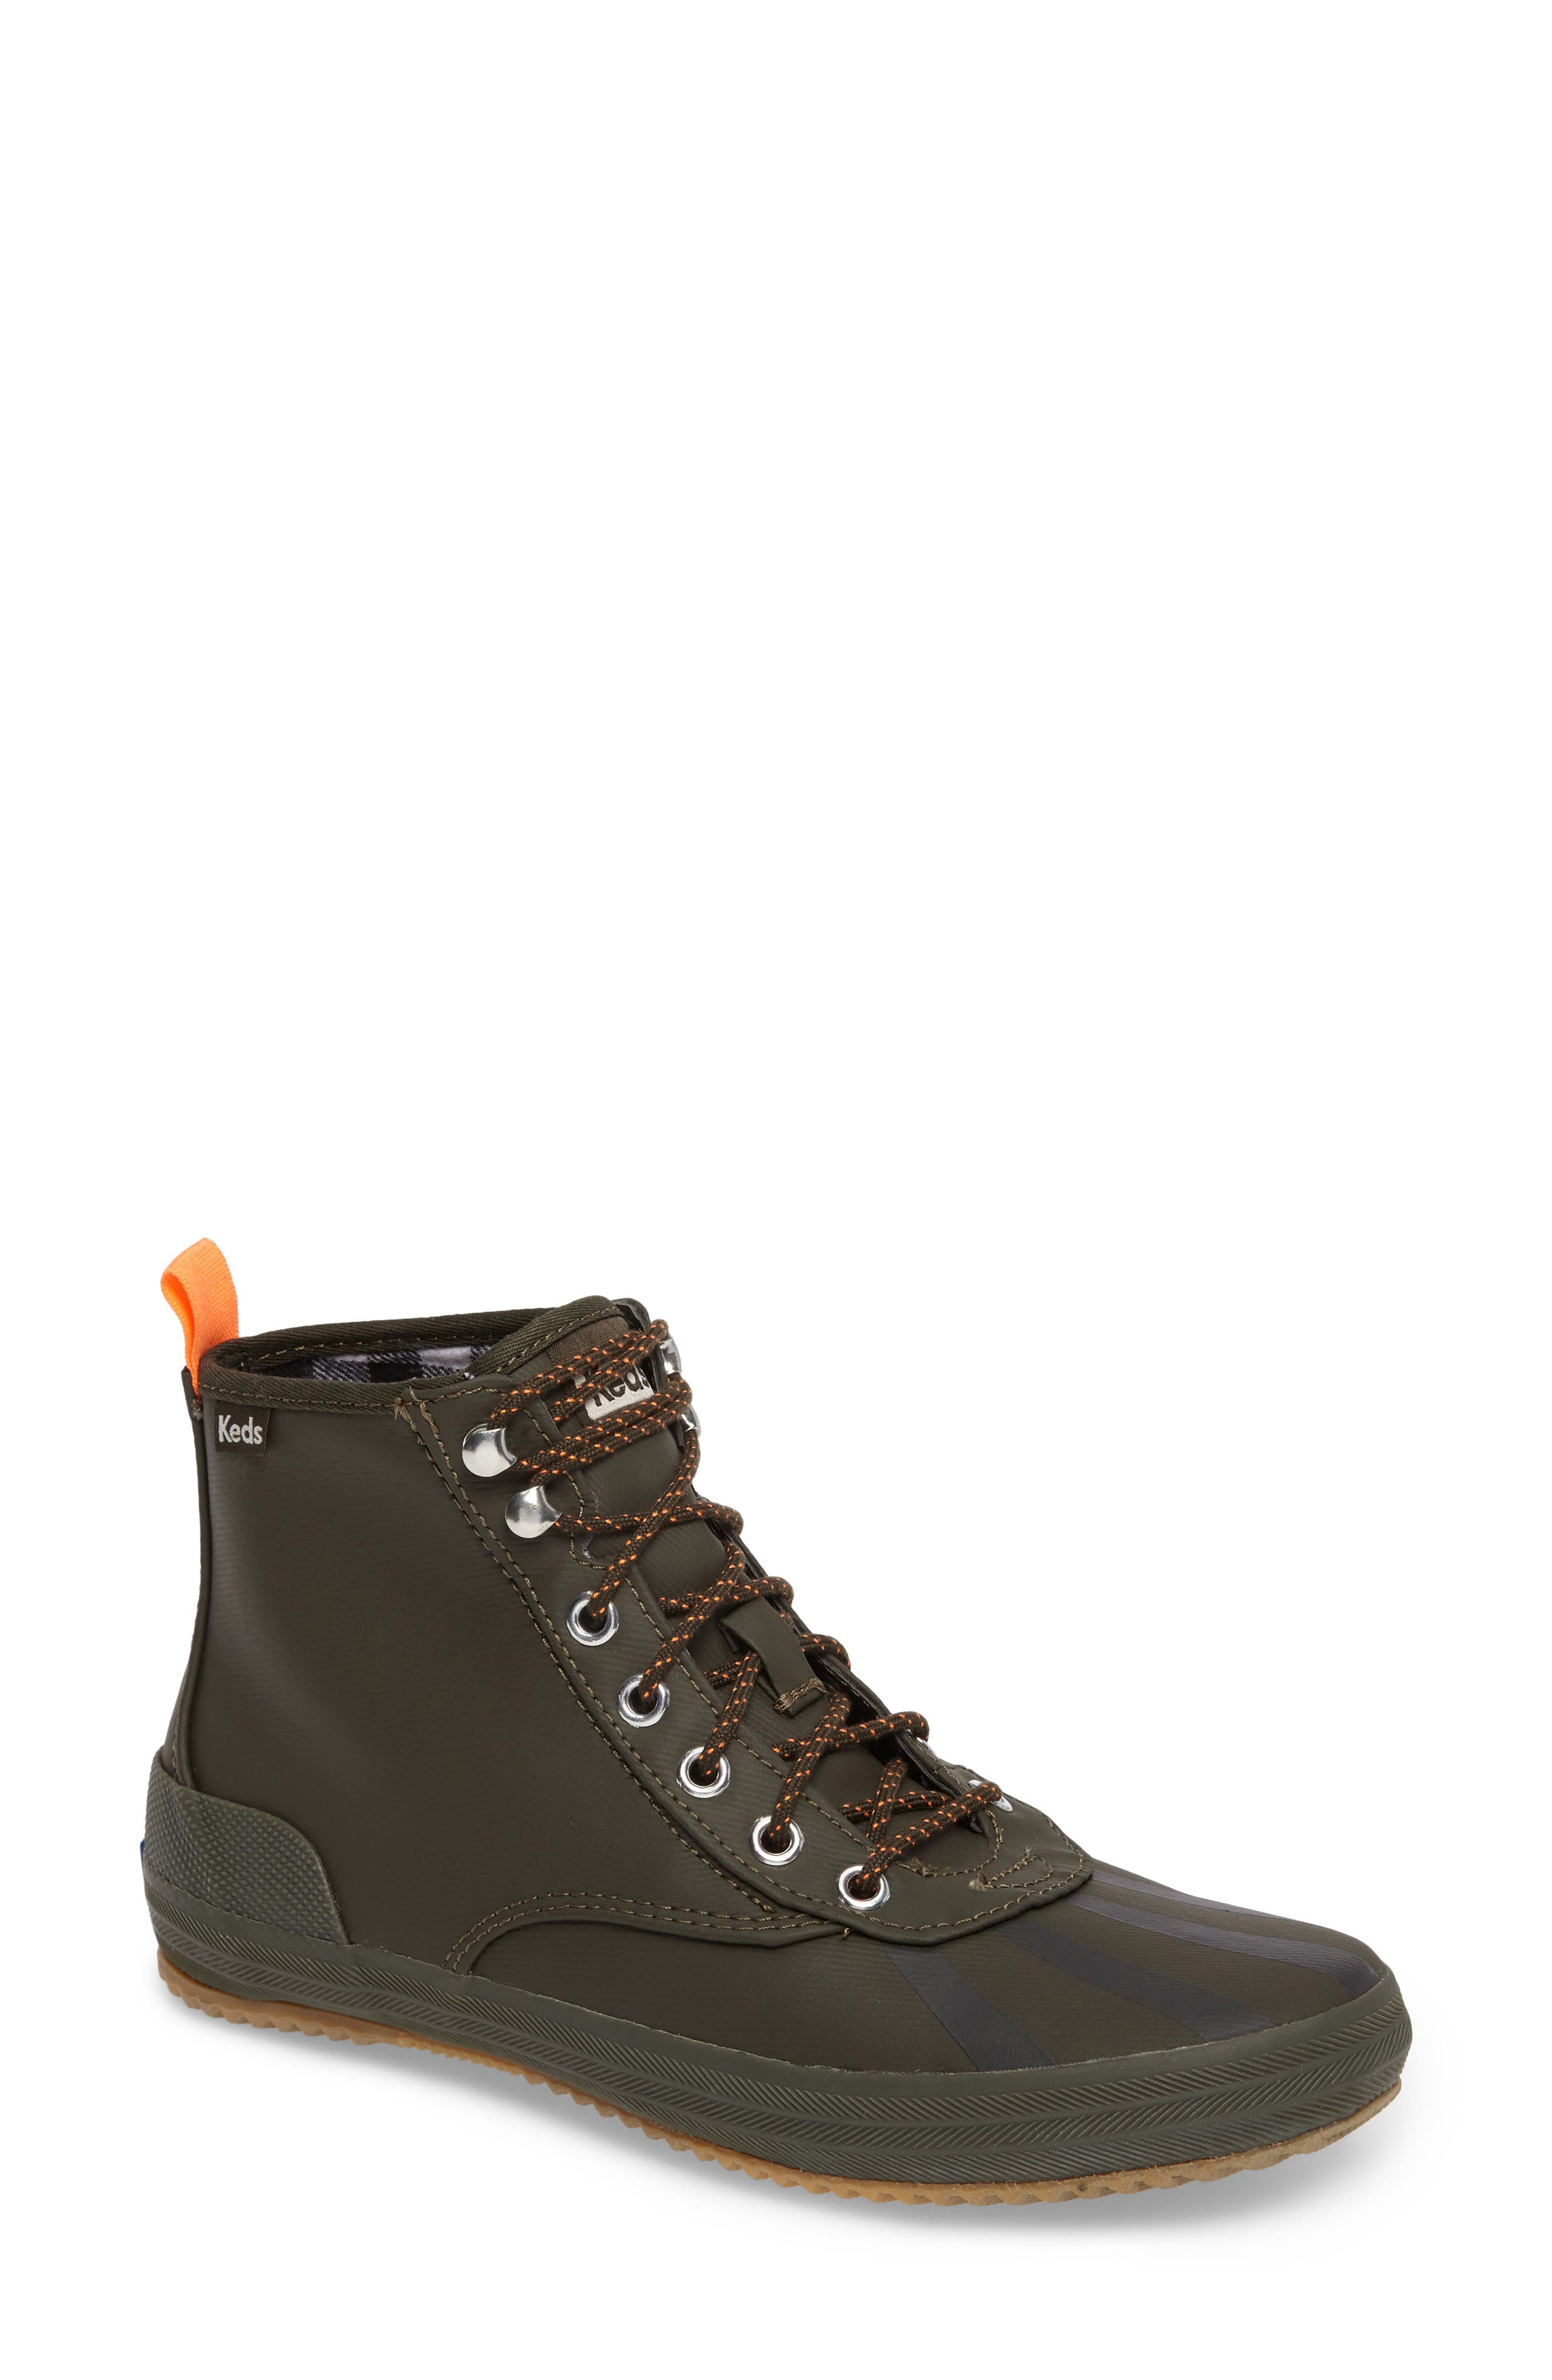 Alternate Image 1 Selected - Keds® Scout Water Repellent Sneaker Boot (Women)